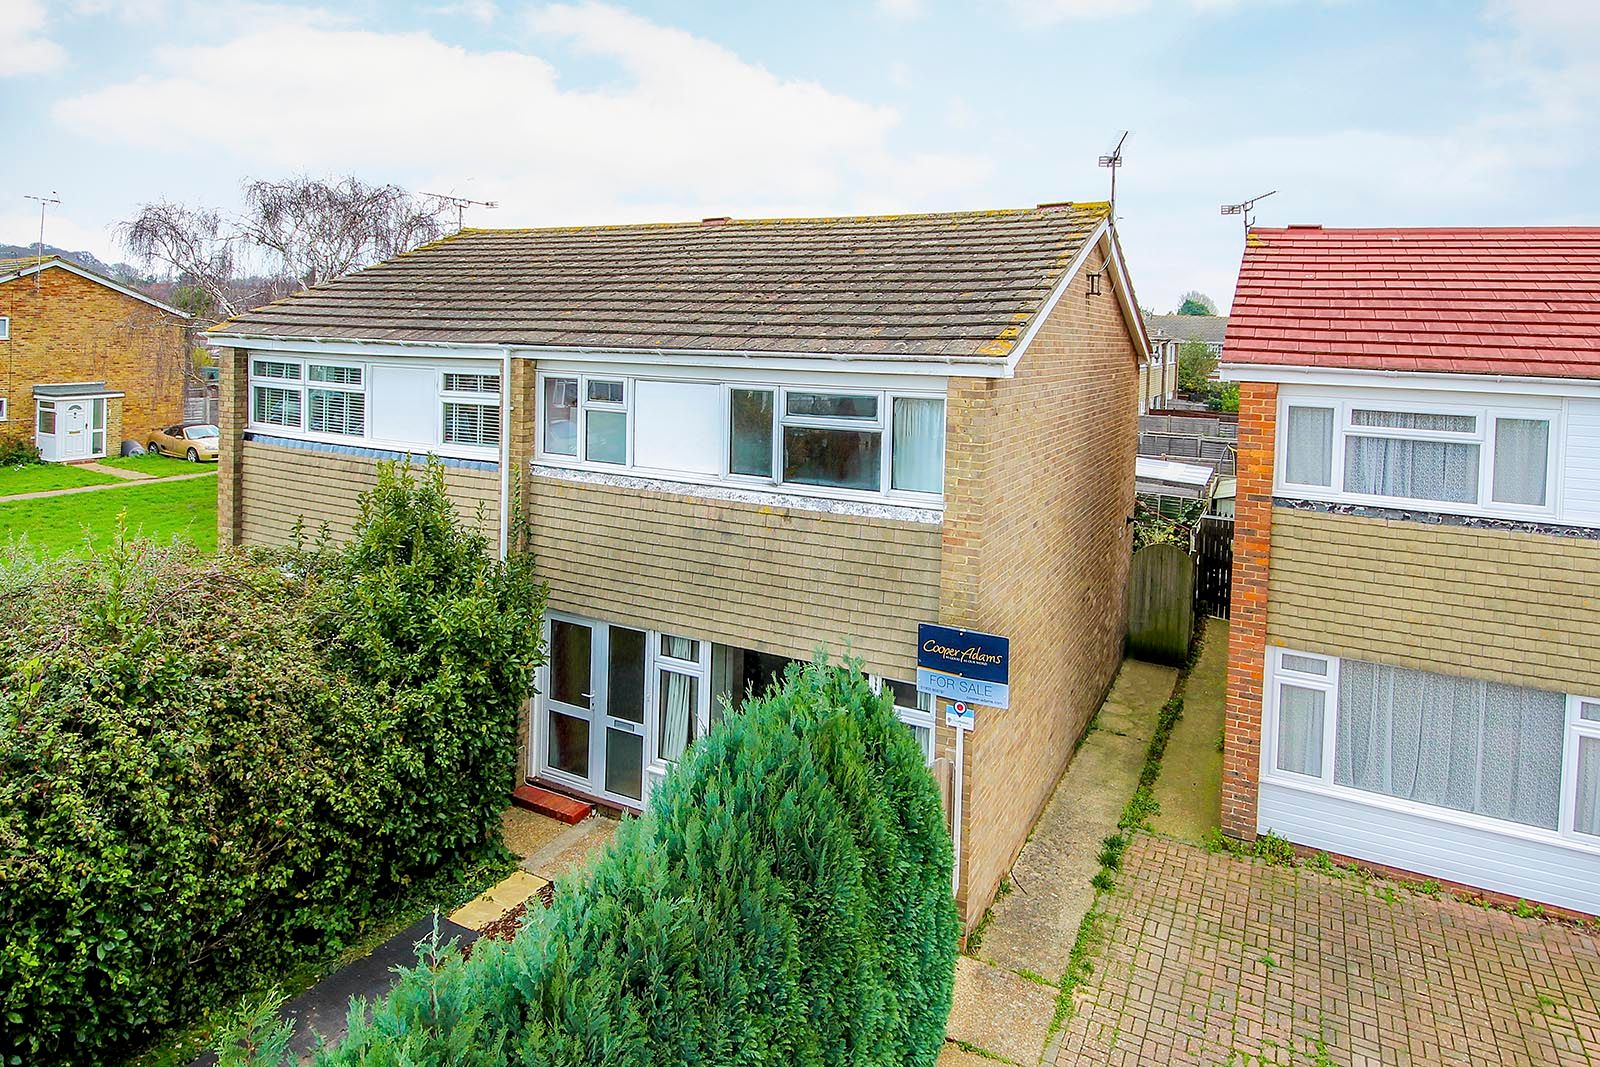 3 bed house for sale in Meadowside 1